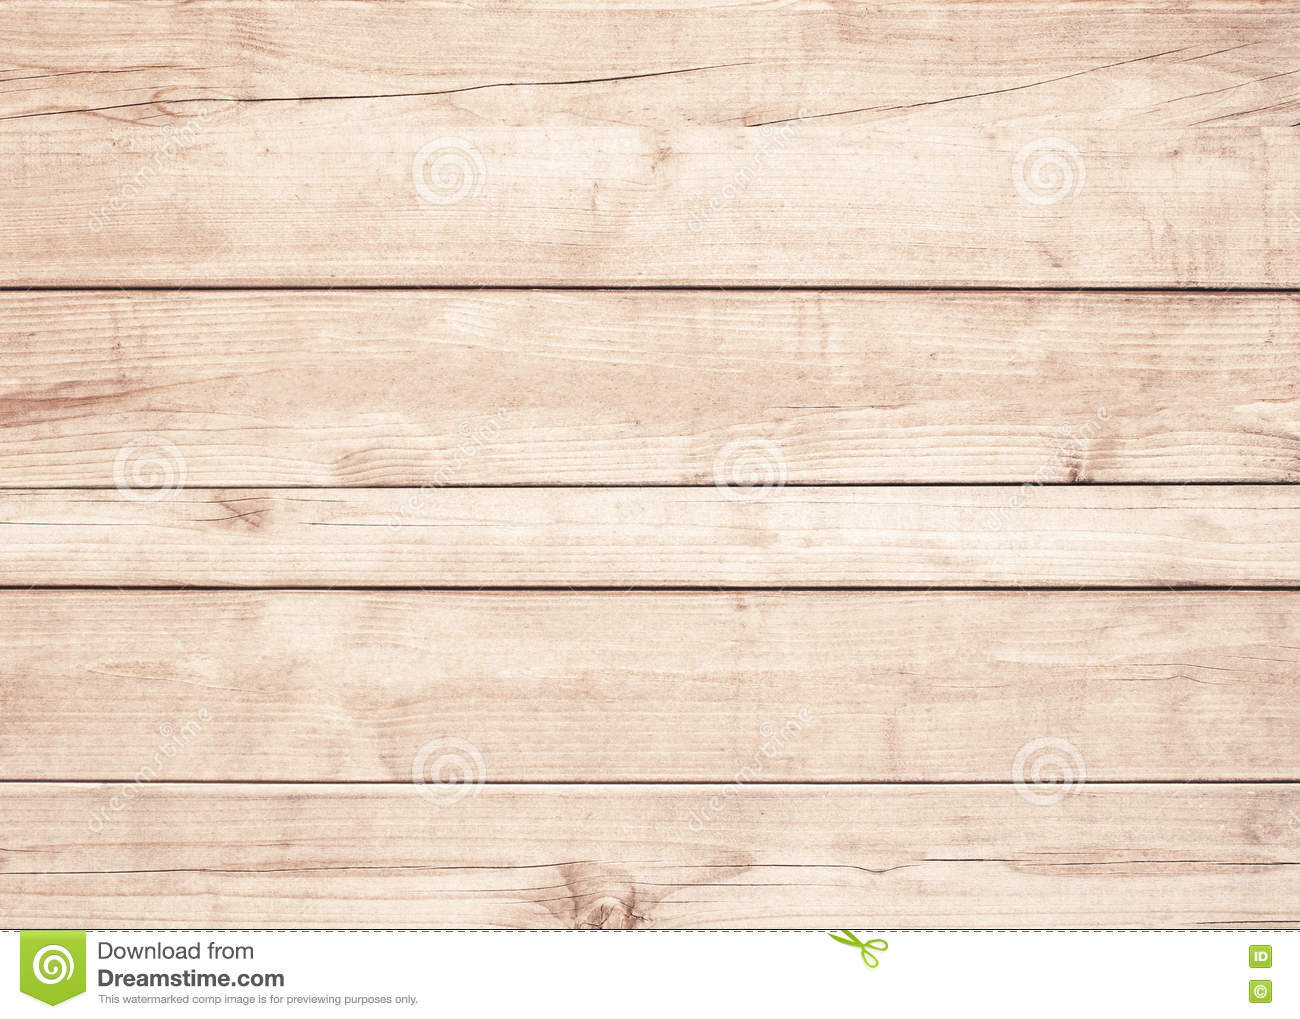 Brown wooden planks, wall, table, ceiling or floor surface. Wood texture